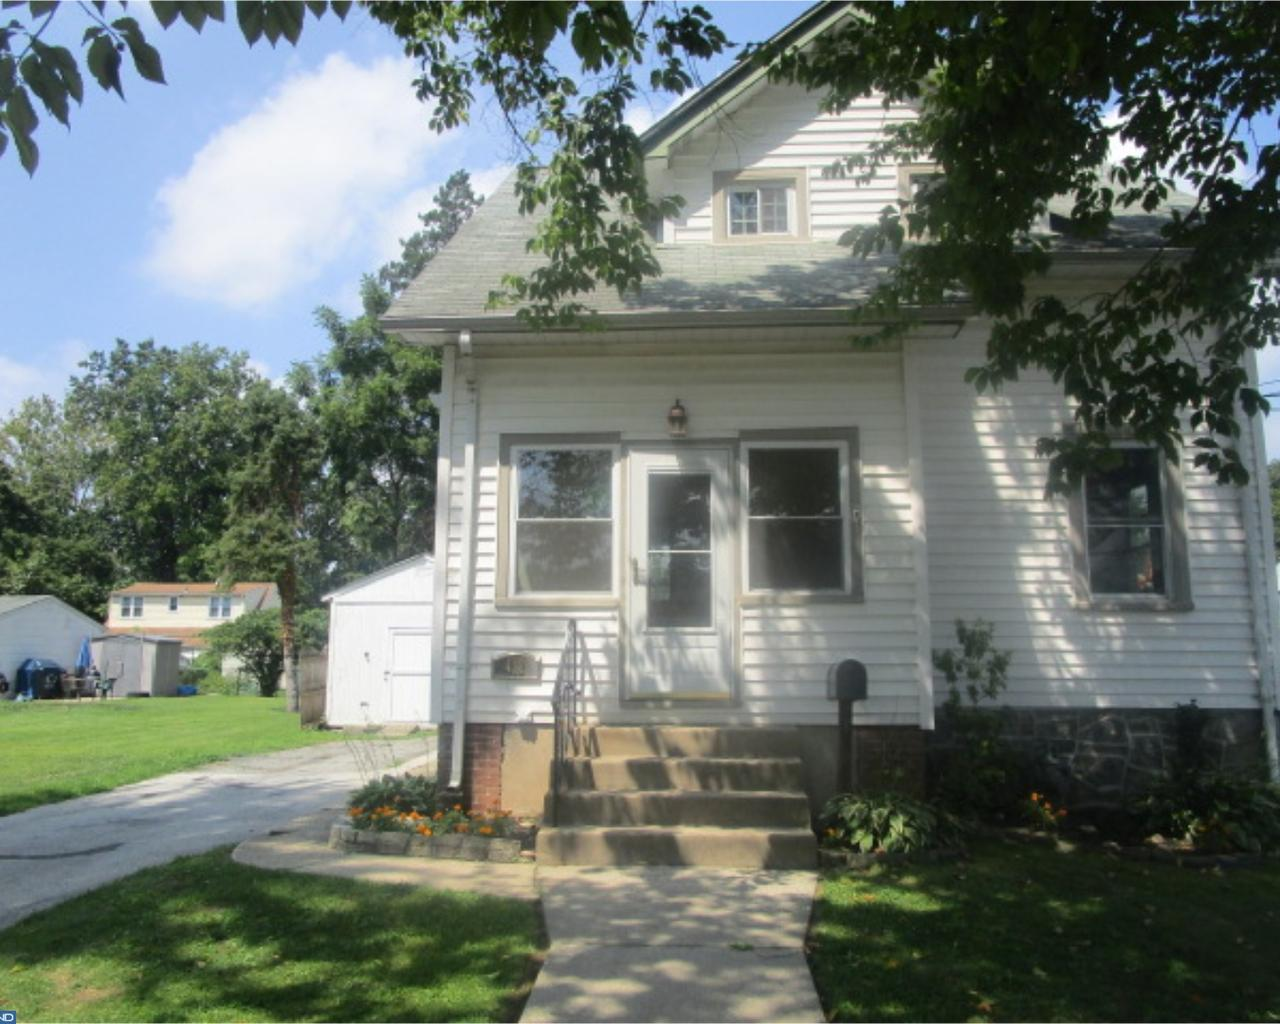 Homes For Sale On Elmwood Ave Glenolden Pa